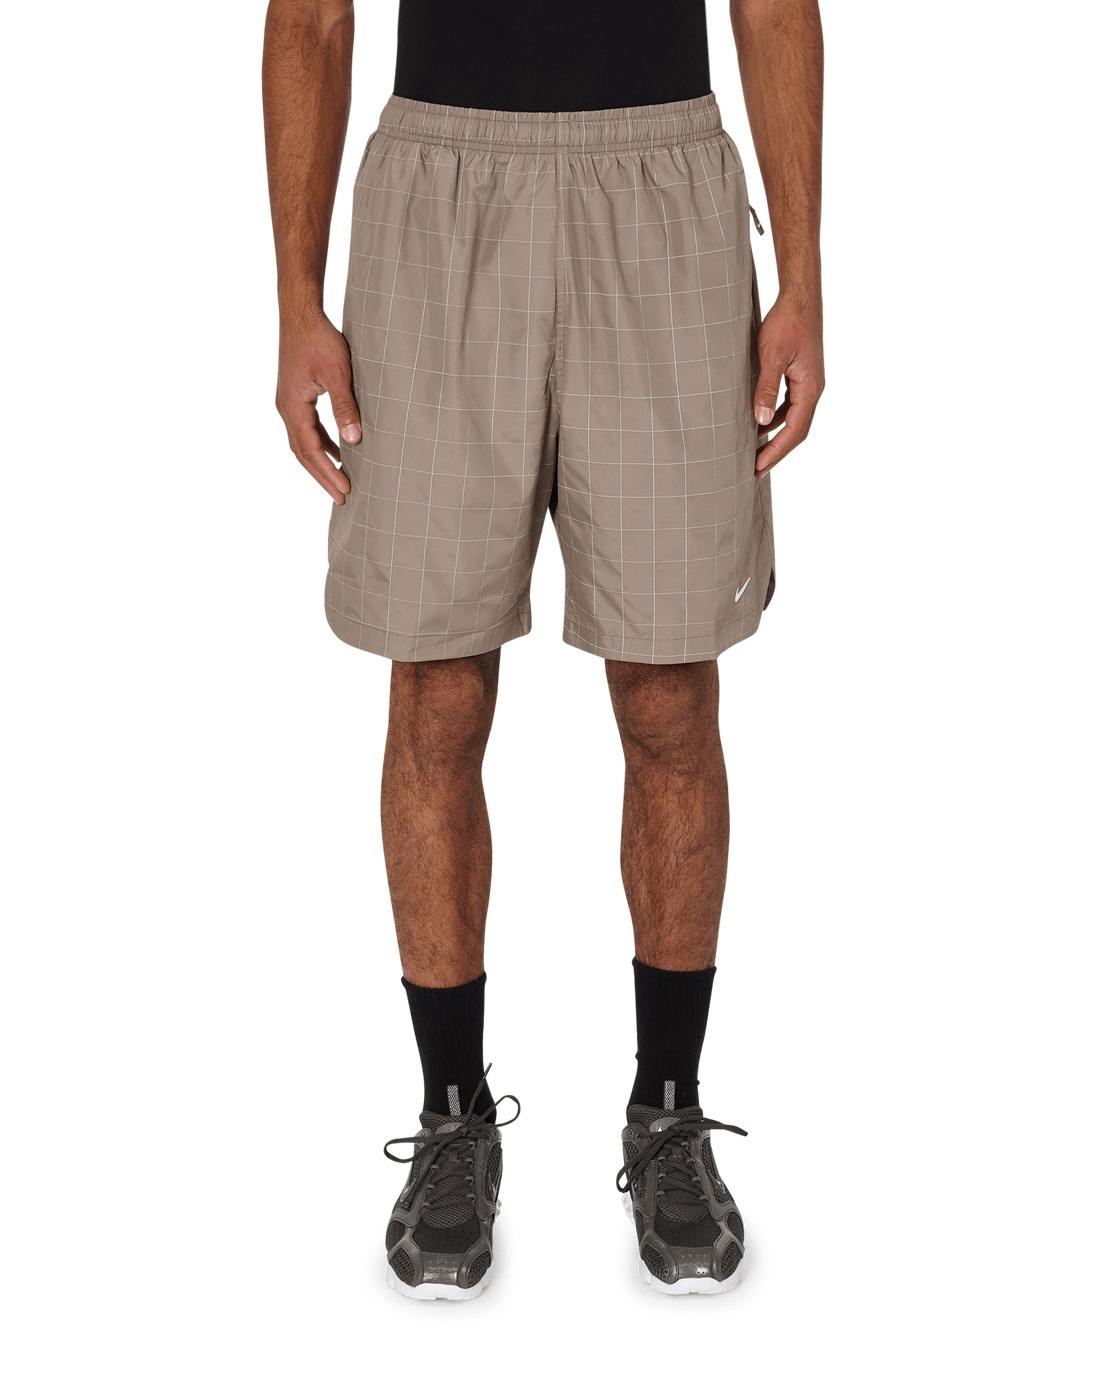 Nike Special Project Nrg Flash Shorts Grey